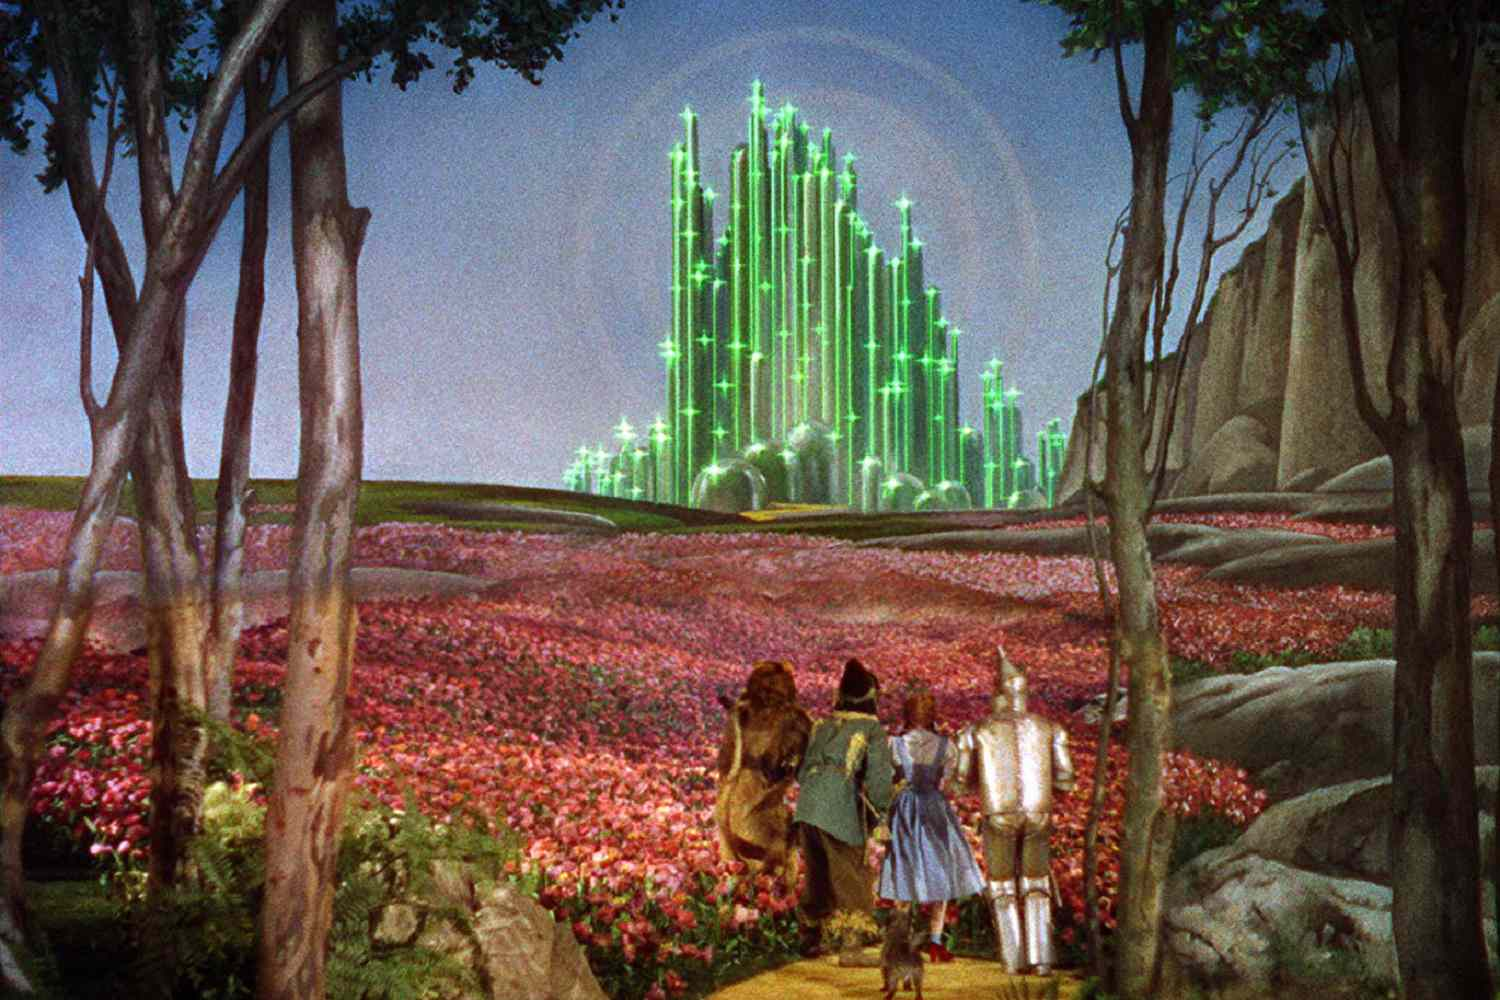 The Emerald City in the 1939 film The Wizard of Oz